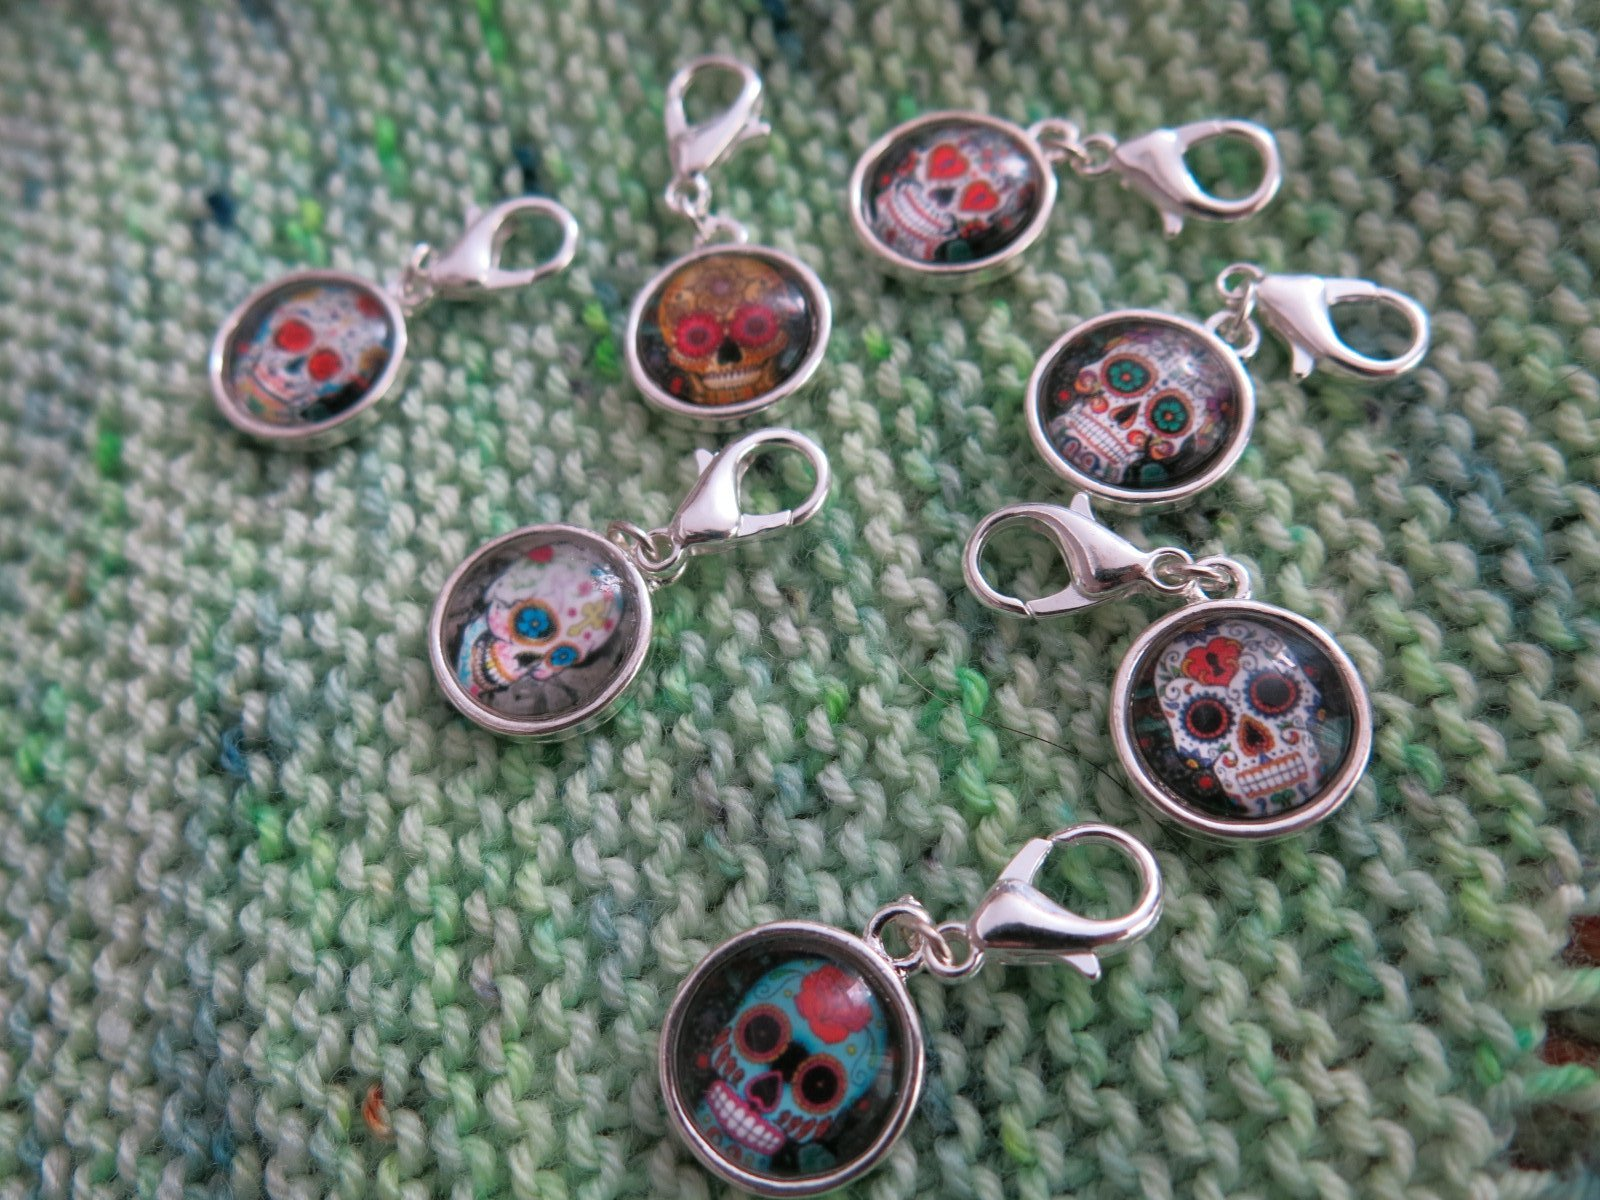 dia de los muertos charms on a clasp for crochet progress keeping